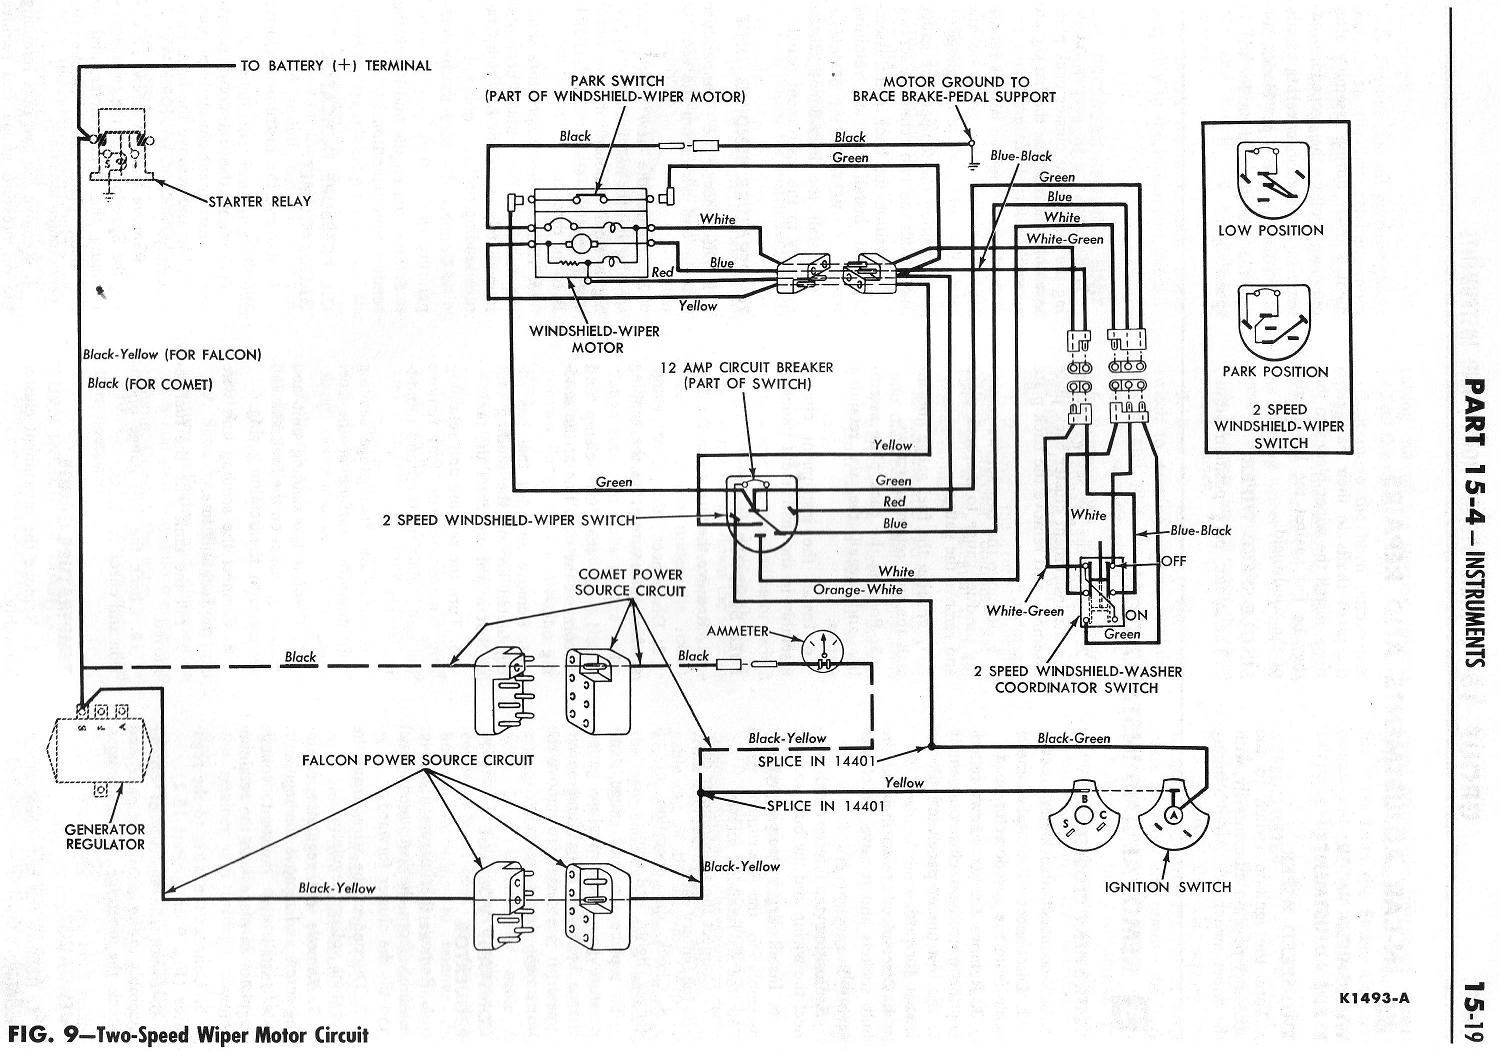 77 Corvette Windshield Wiper Wiring Diagram Wiring Diagram Appearance A Appearance A Saleebalocchi It